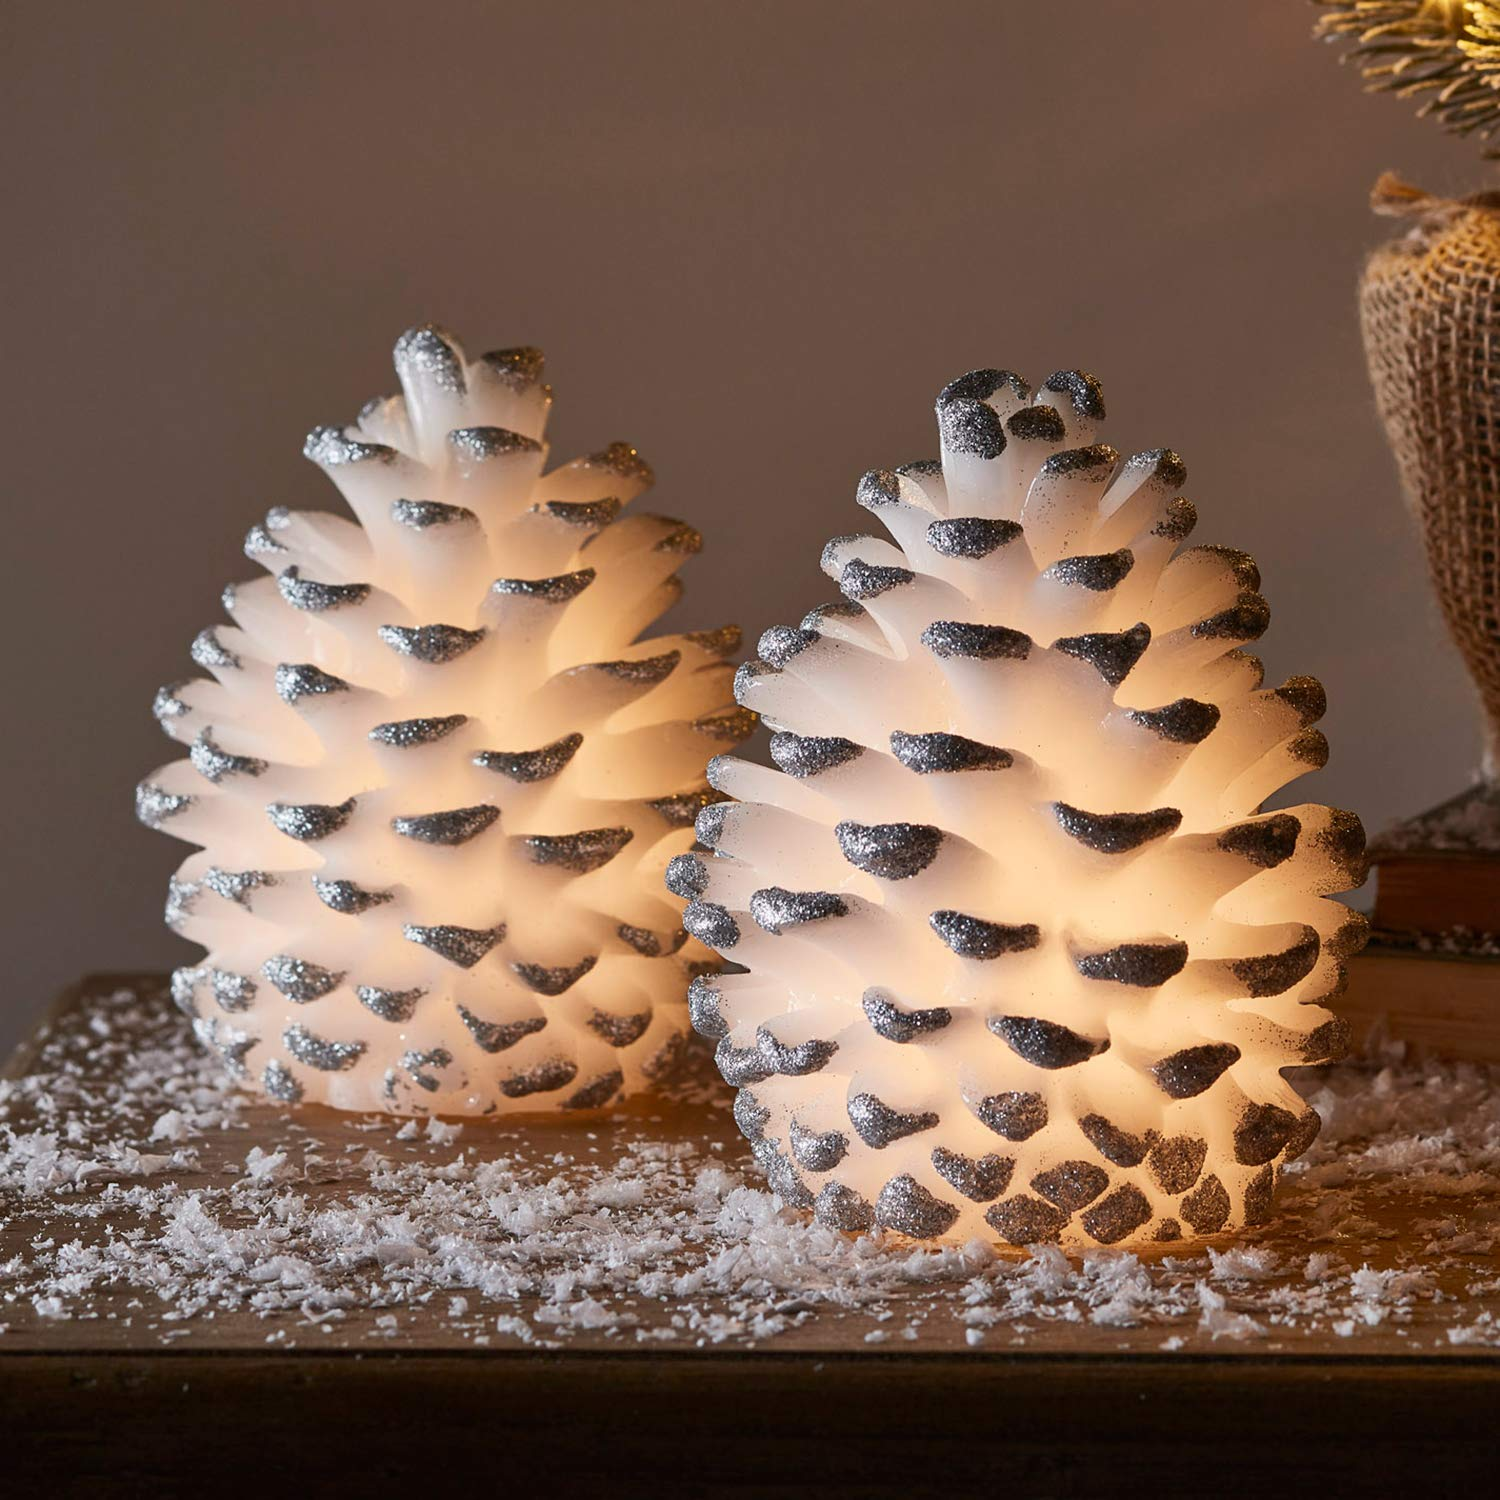 """Lights4fun, Inc. 5.5"""" & 4.5"""" Set of 2 White Wax Pine Cone Battery Operated LED Flameless Candles Remote Control"""